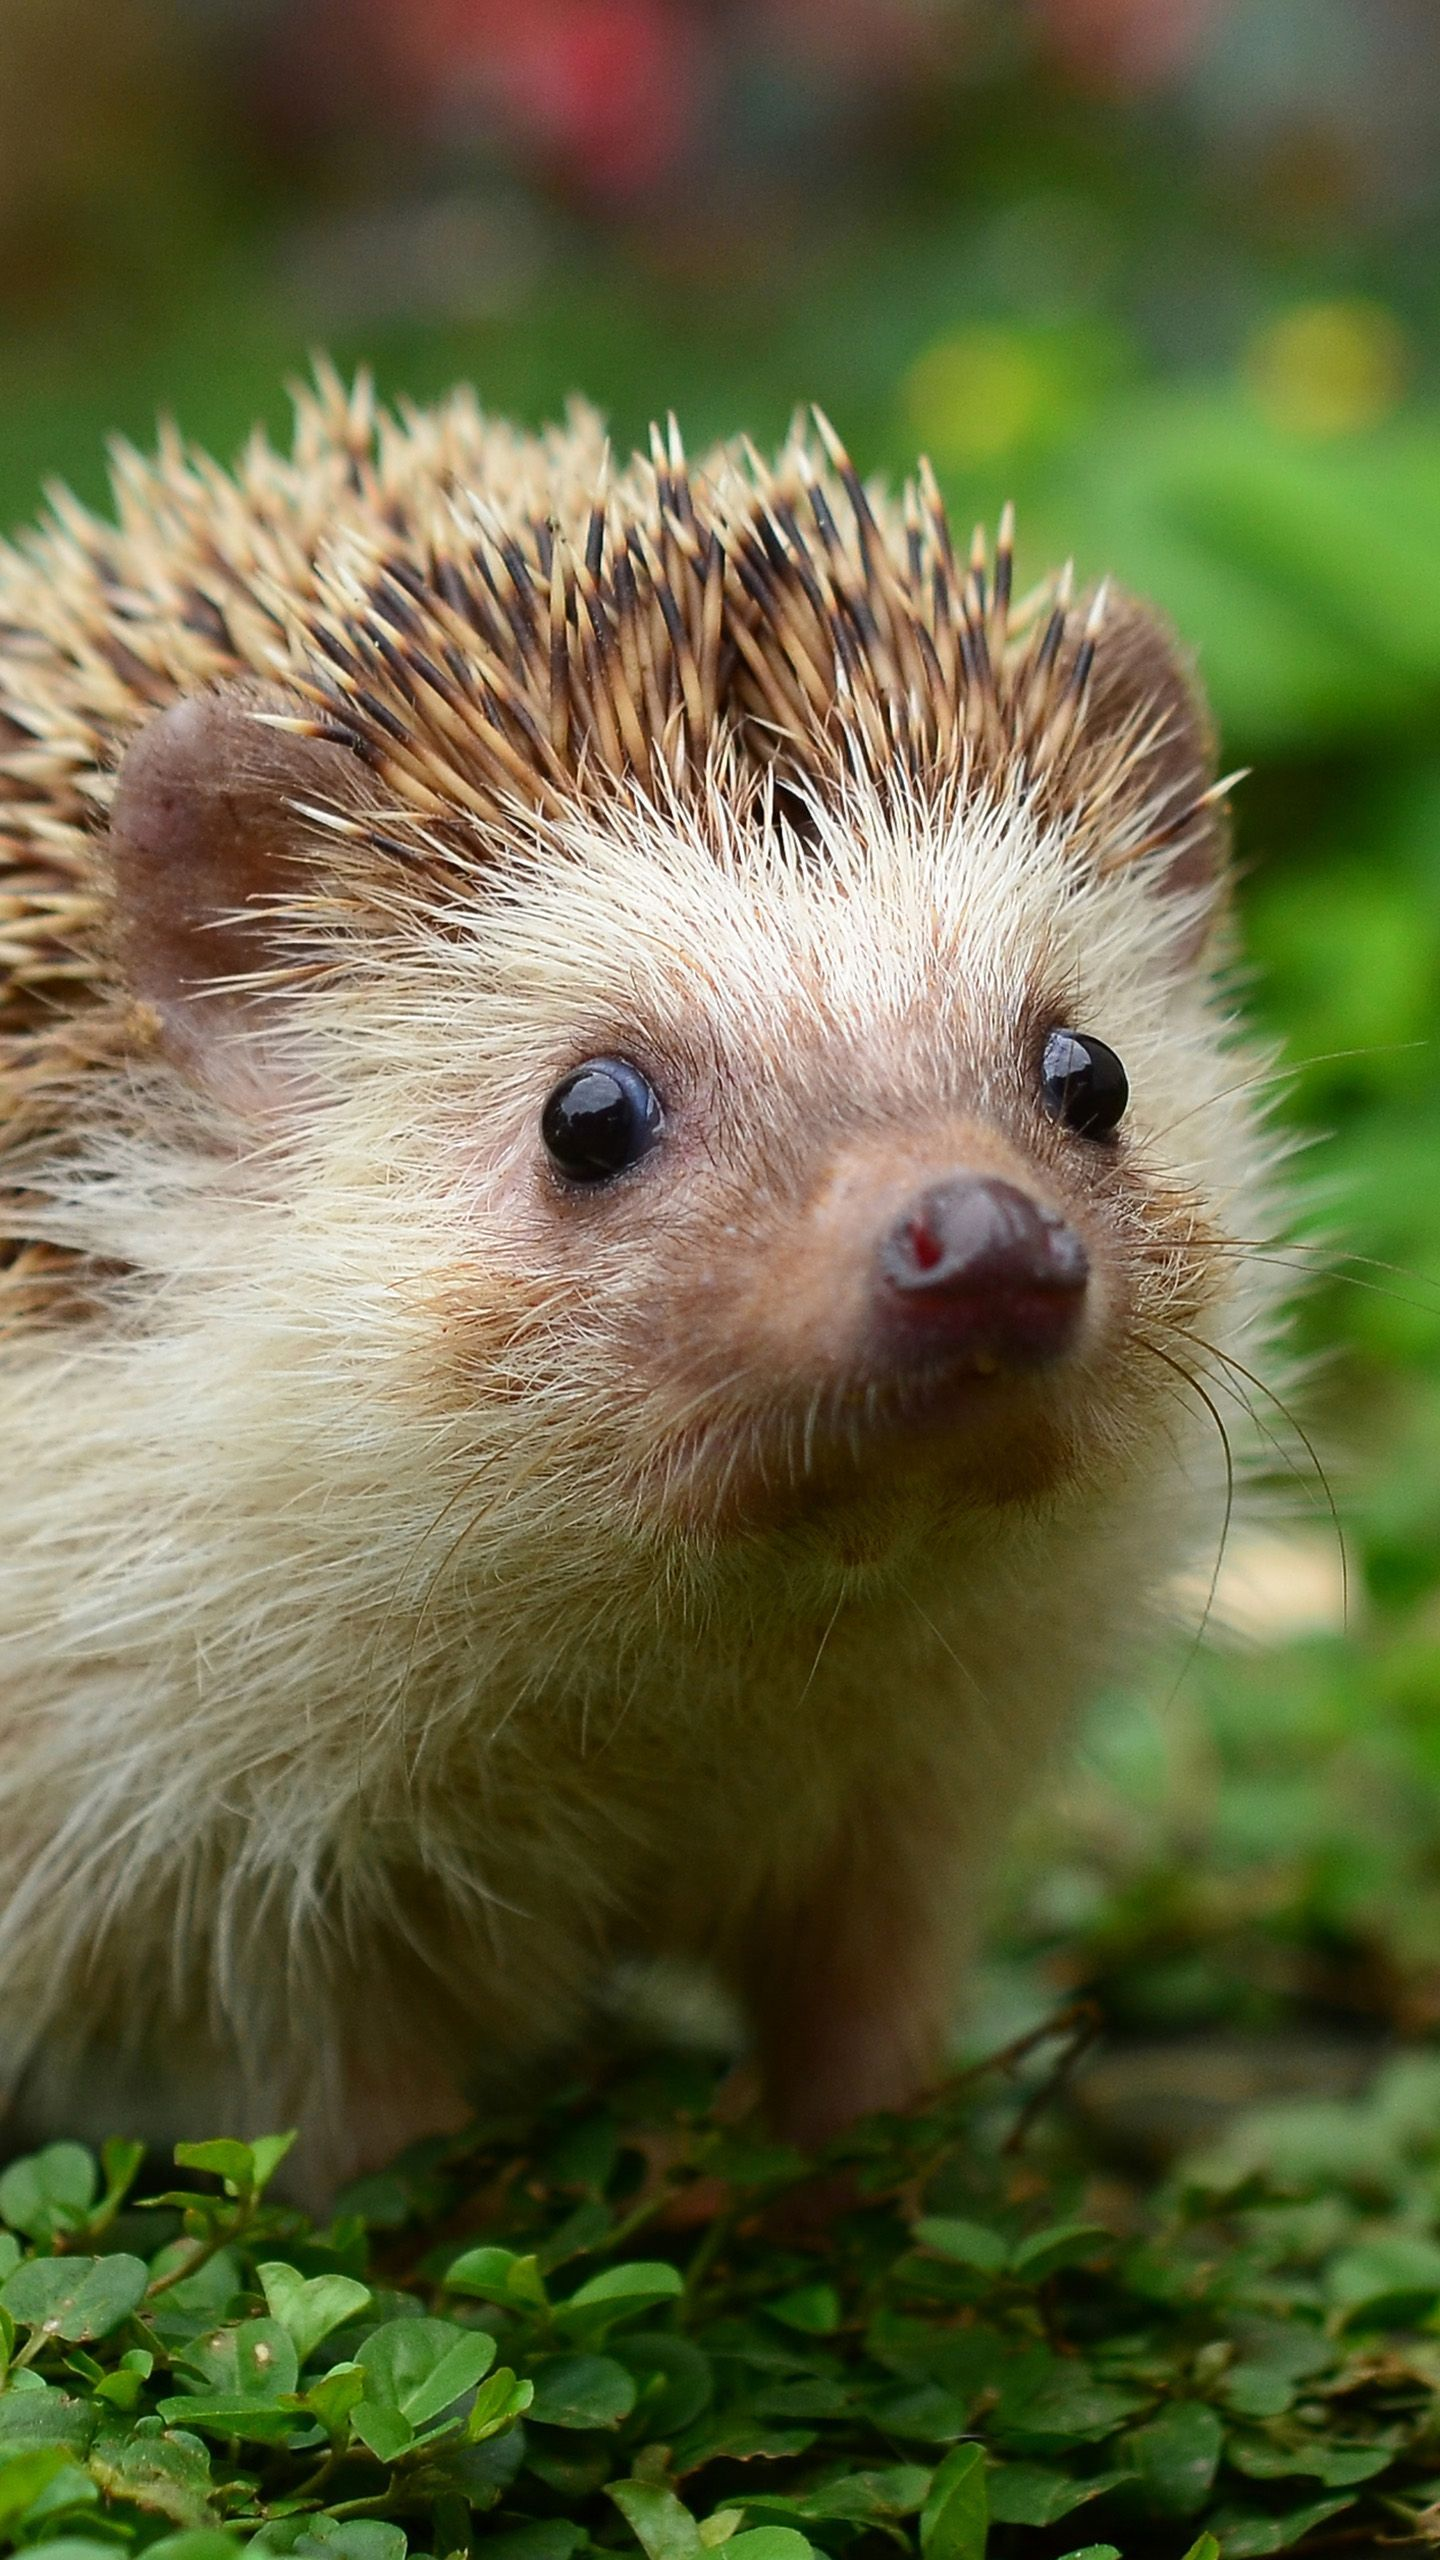 40 Hedgehog Wallpapers Download At Wallpaperbro Cute Animals Animal Pictures Baby Animals Pictures